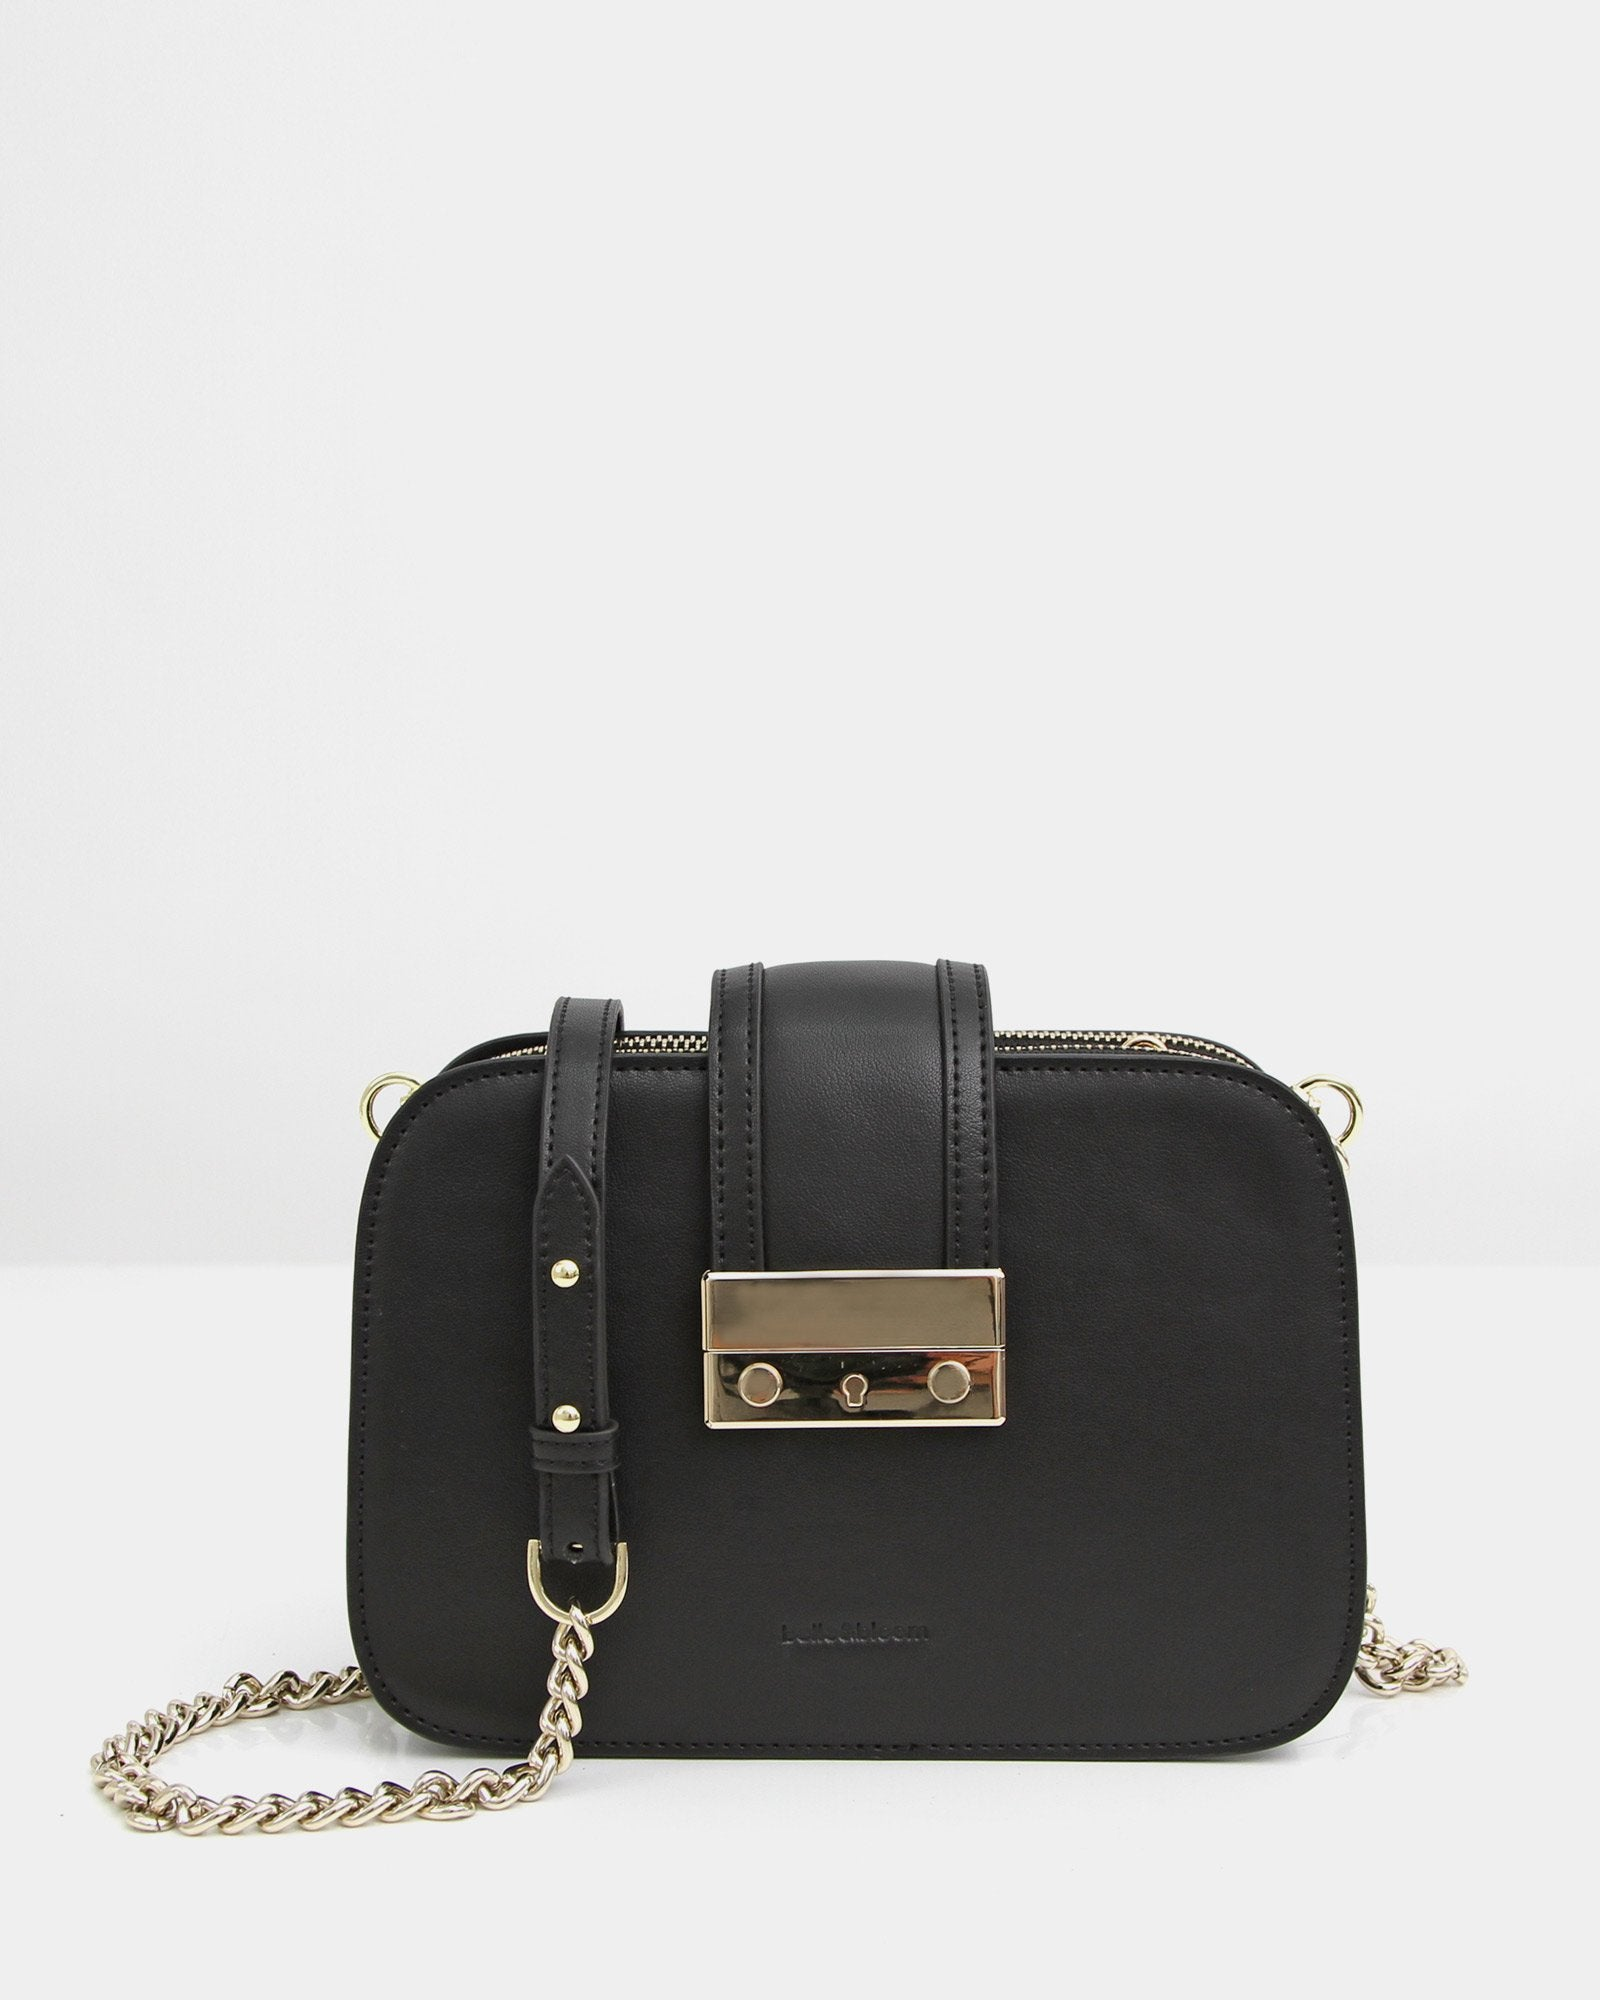 black-leather-boxy-crossbody-with-golden-hardware.jpg